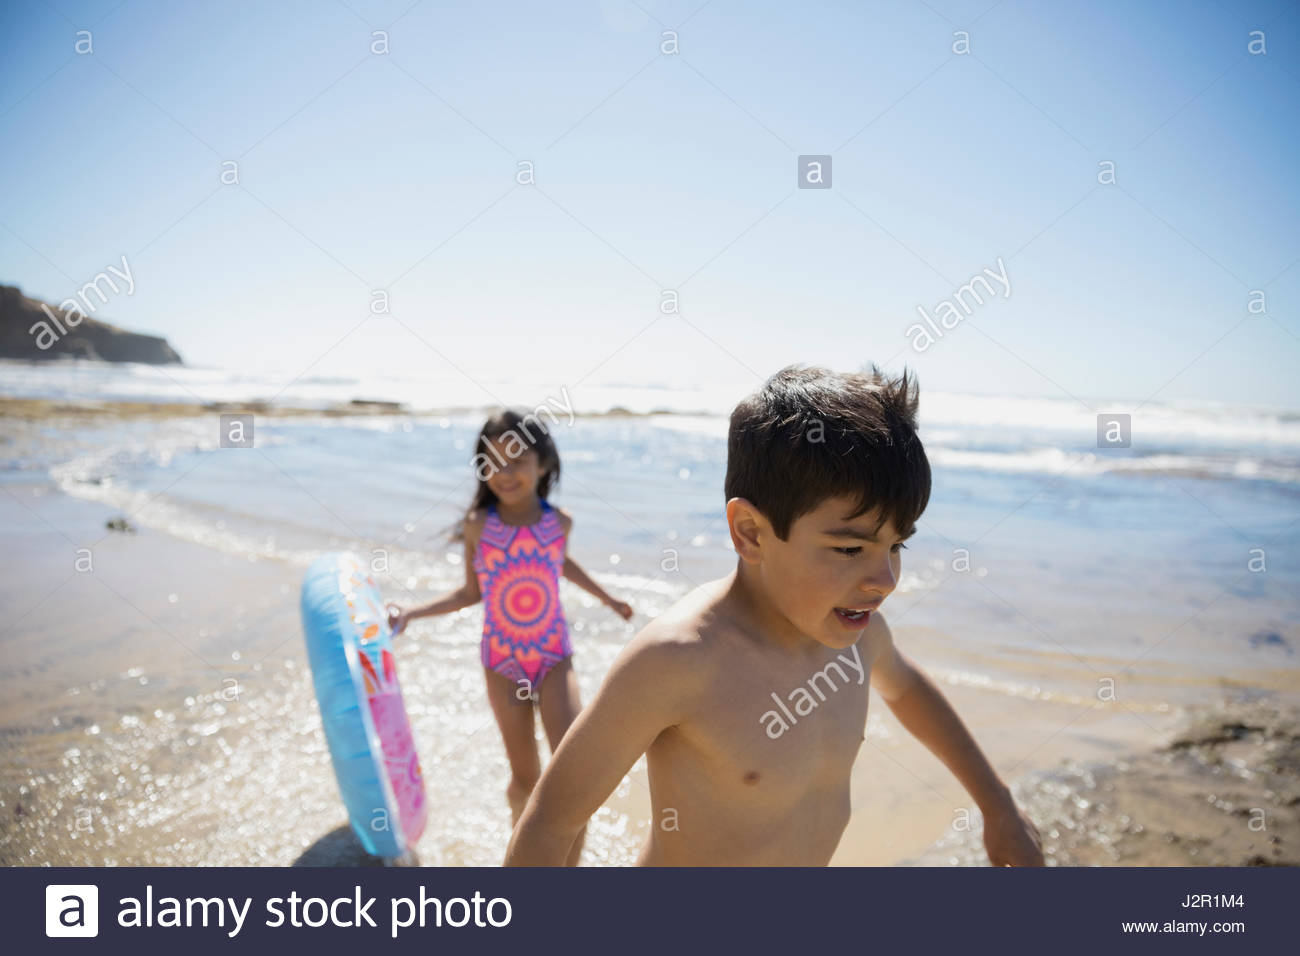 Latino brother and sister with inflatable ring on sunny beach - Stock Image